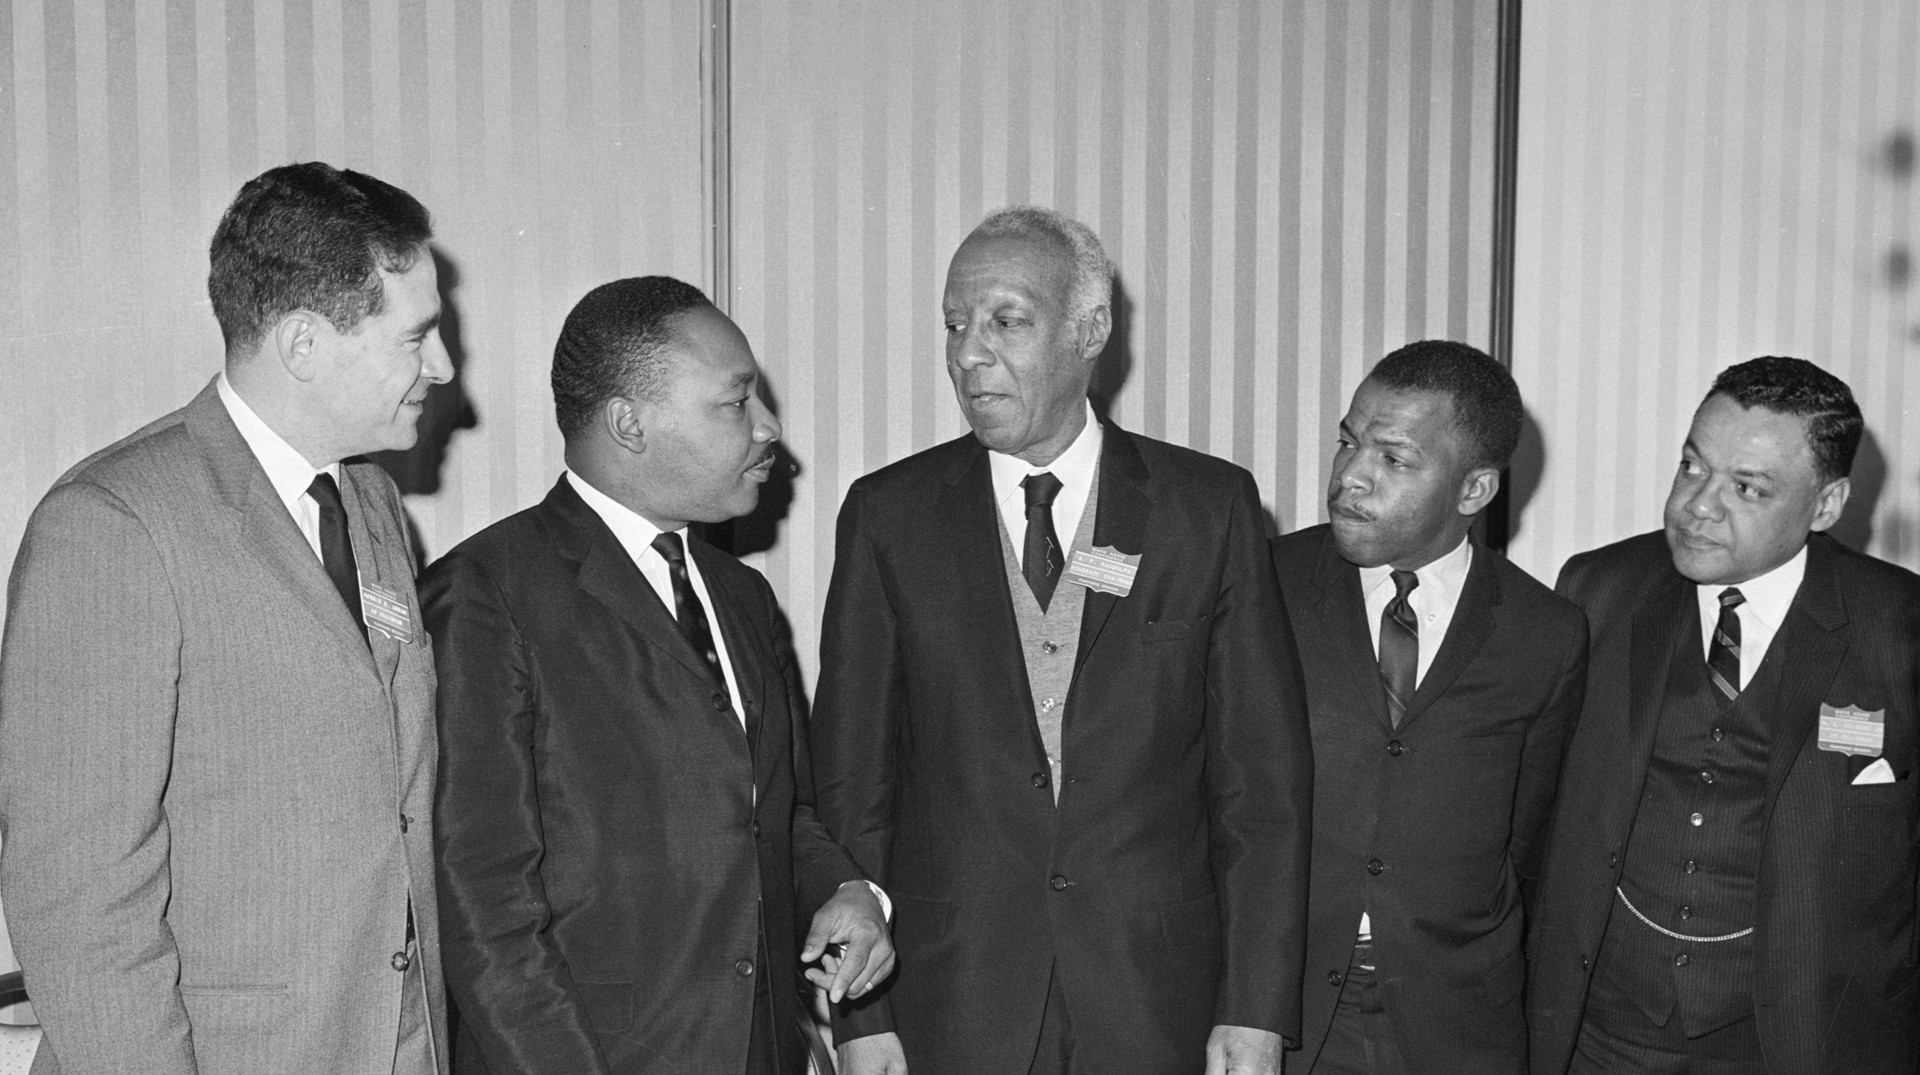 photo: Abram, King, Randolph, Lewis, Coleman